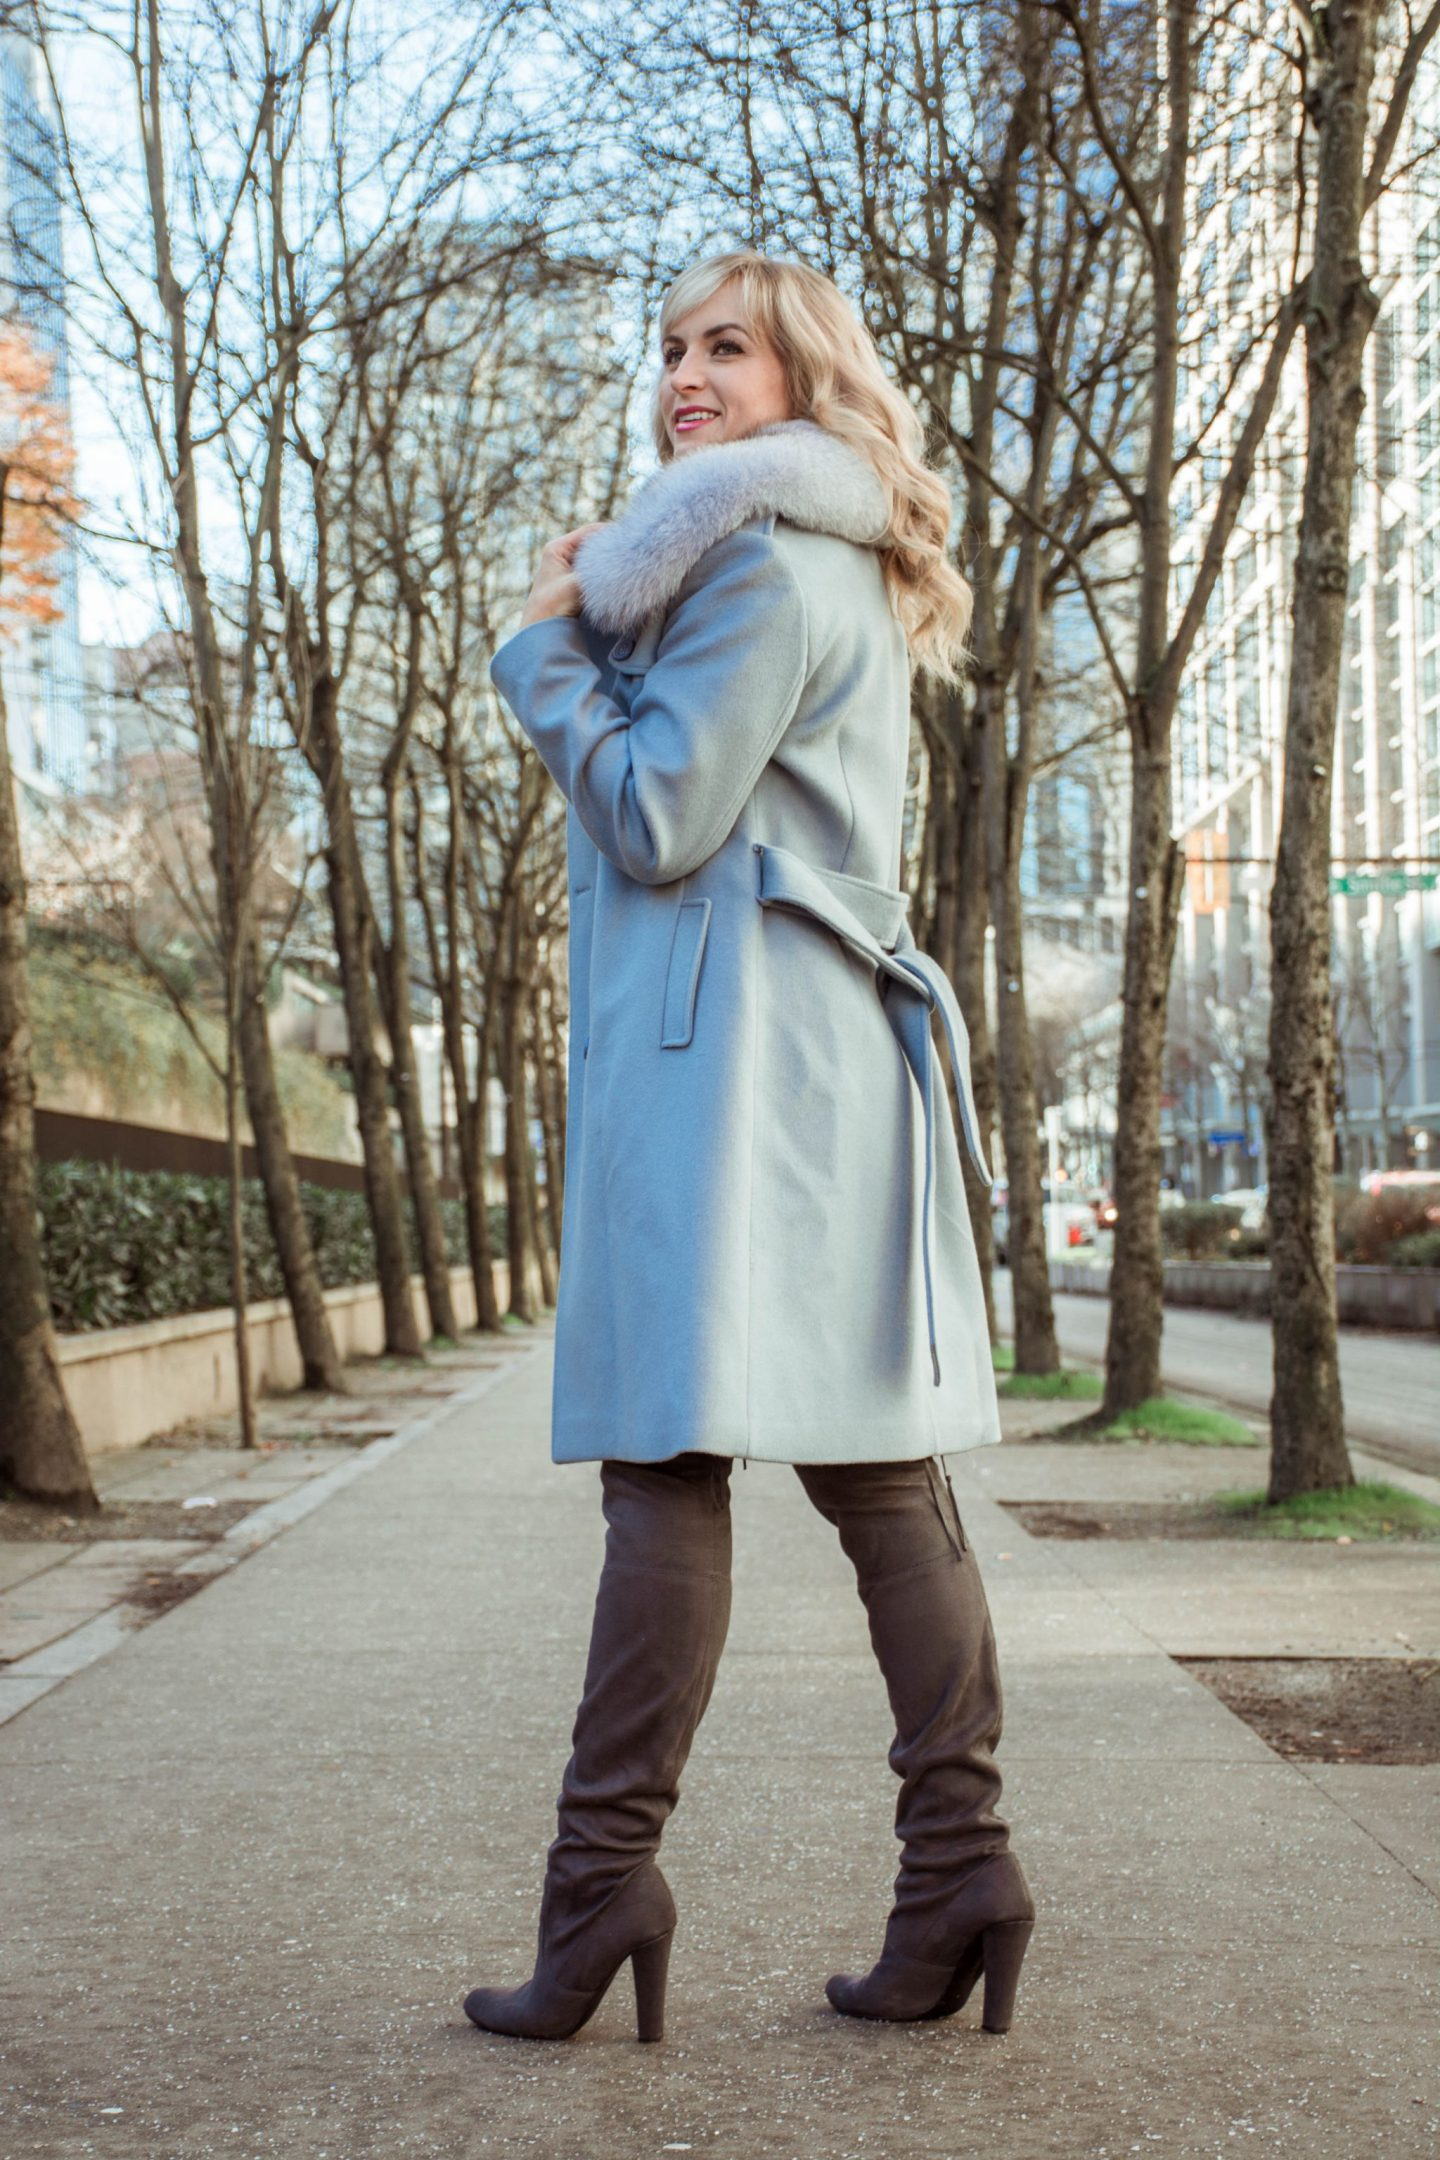 sicily clothing pale blue coat and grey suede boots